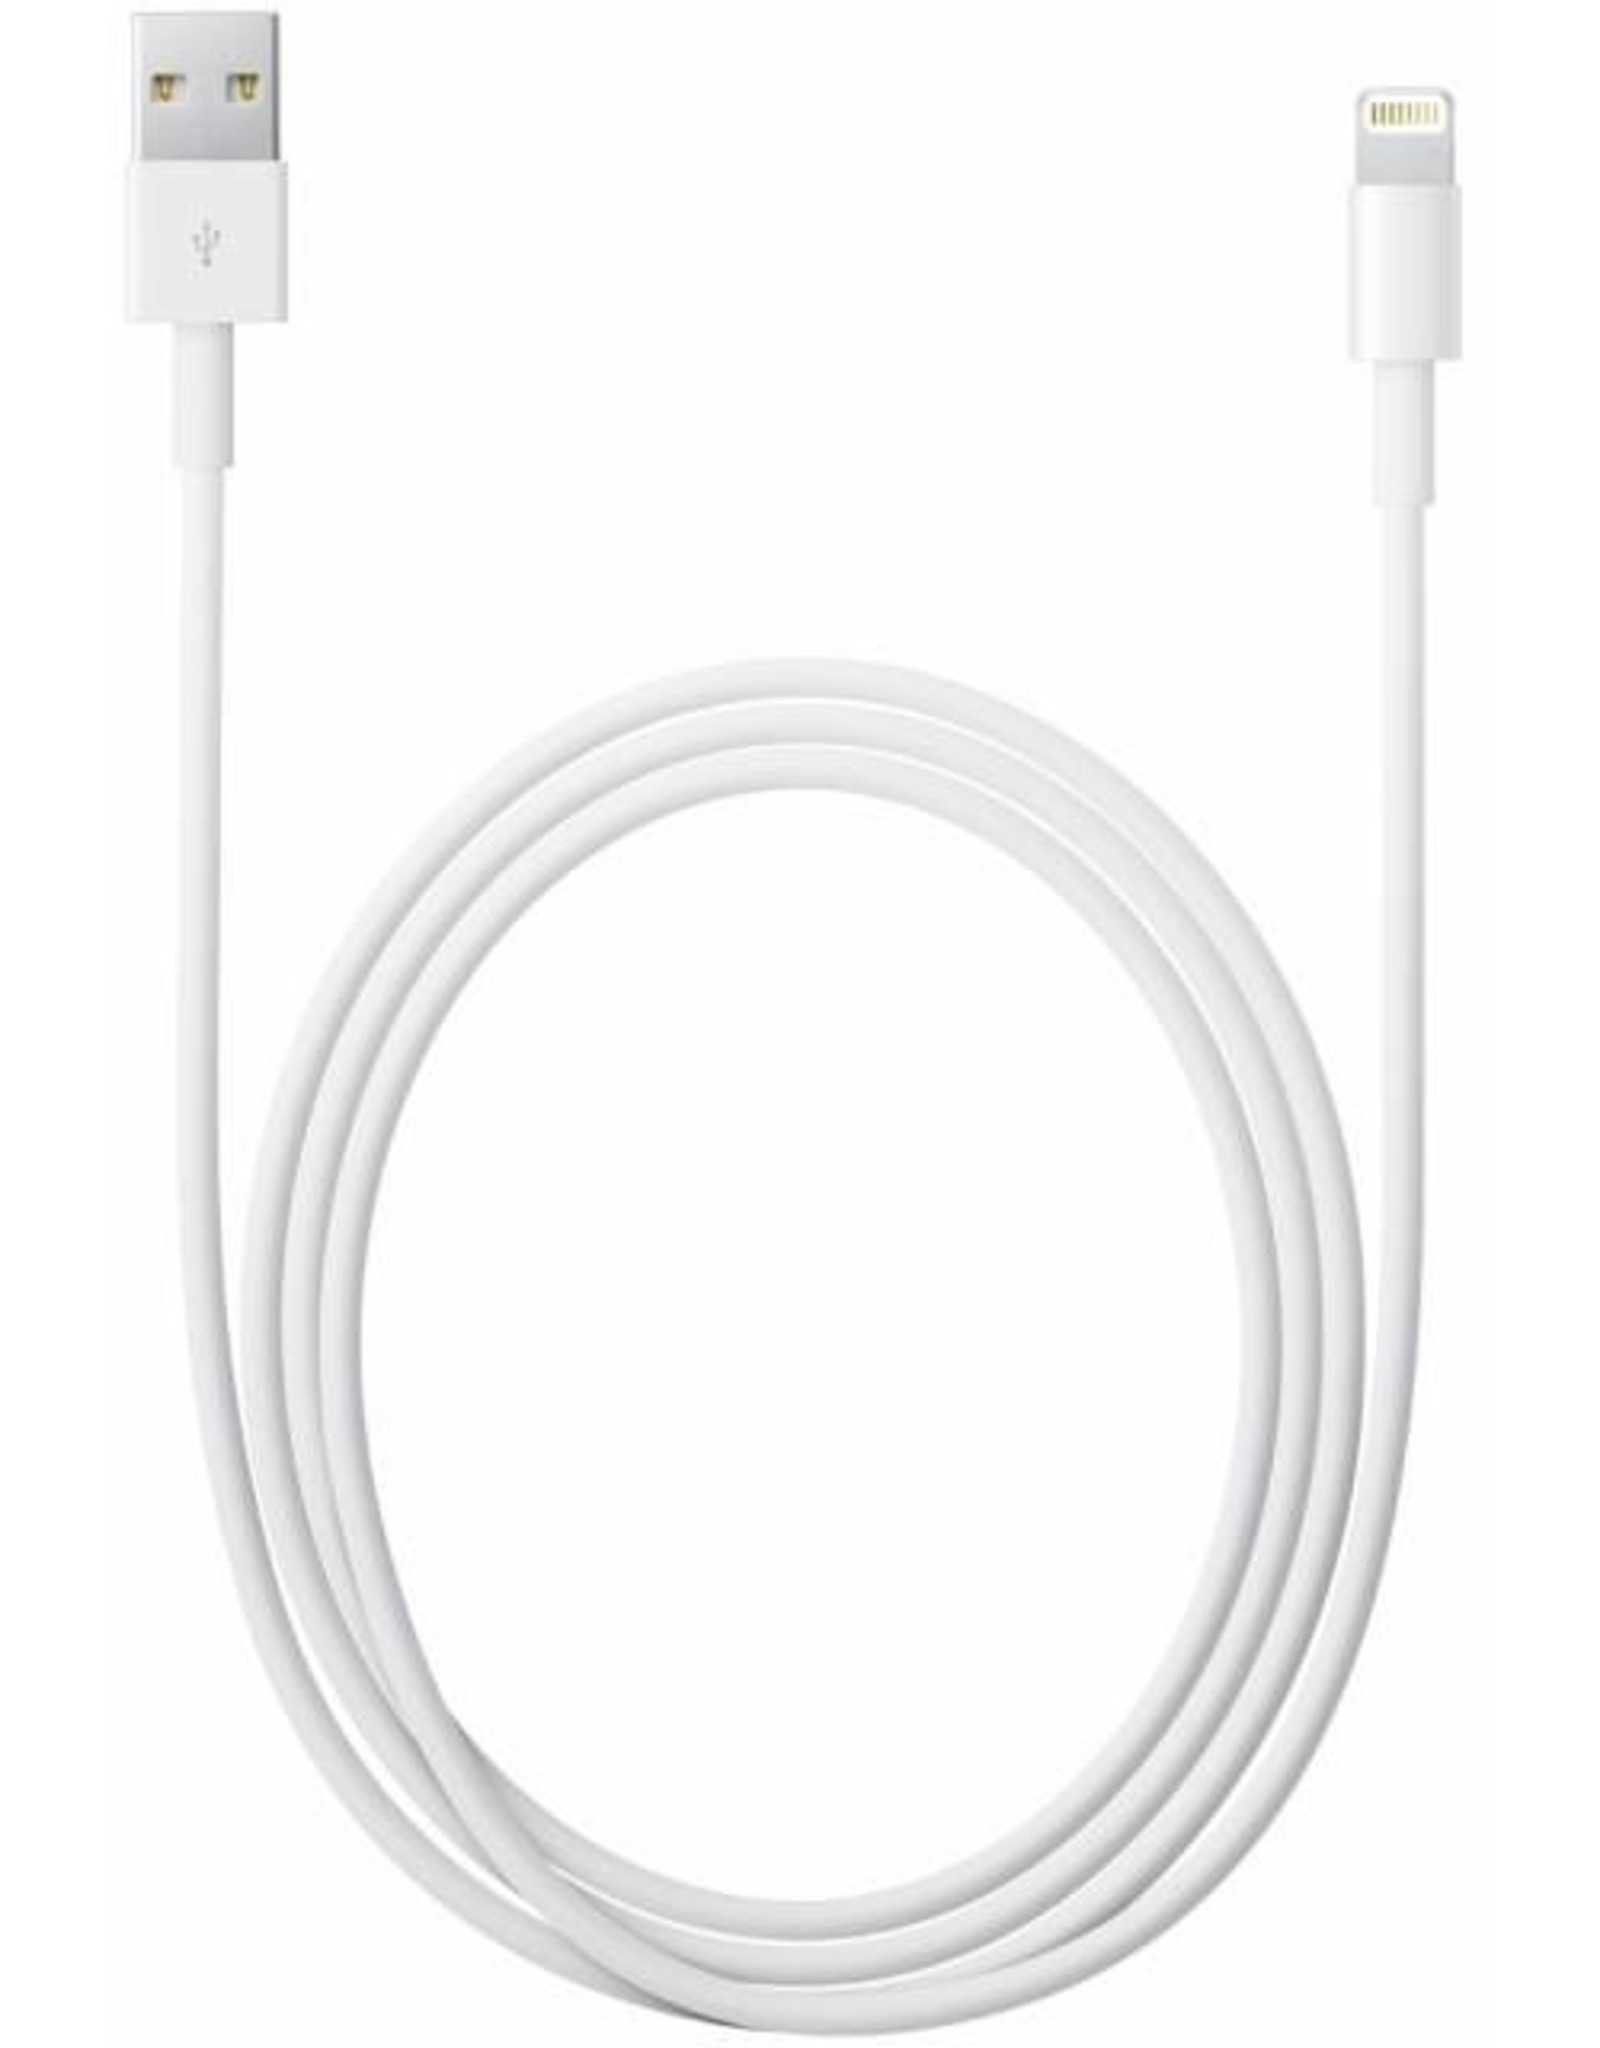 Apple Apple Lightning to USB Cable 1m. White